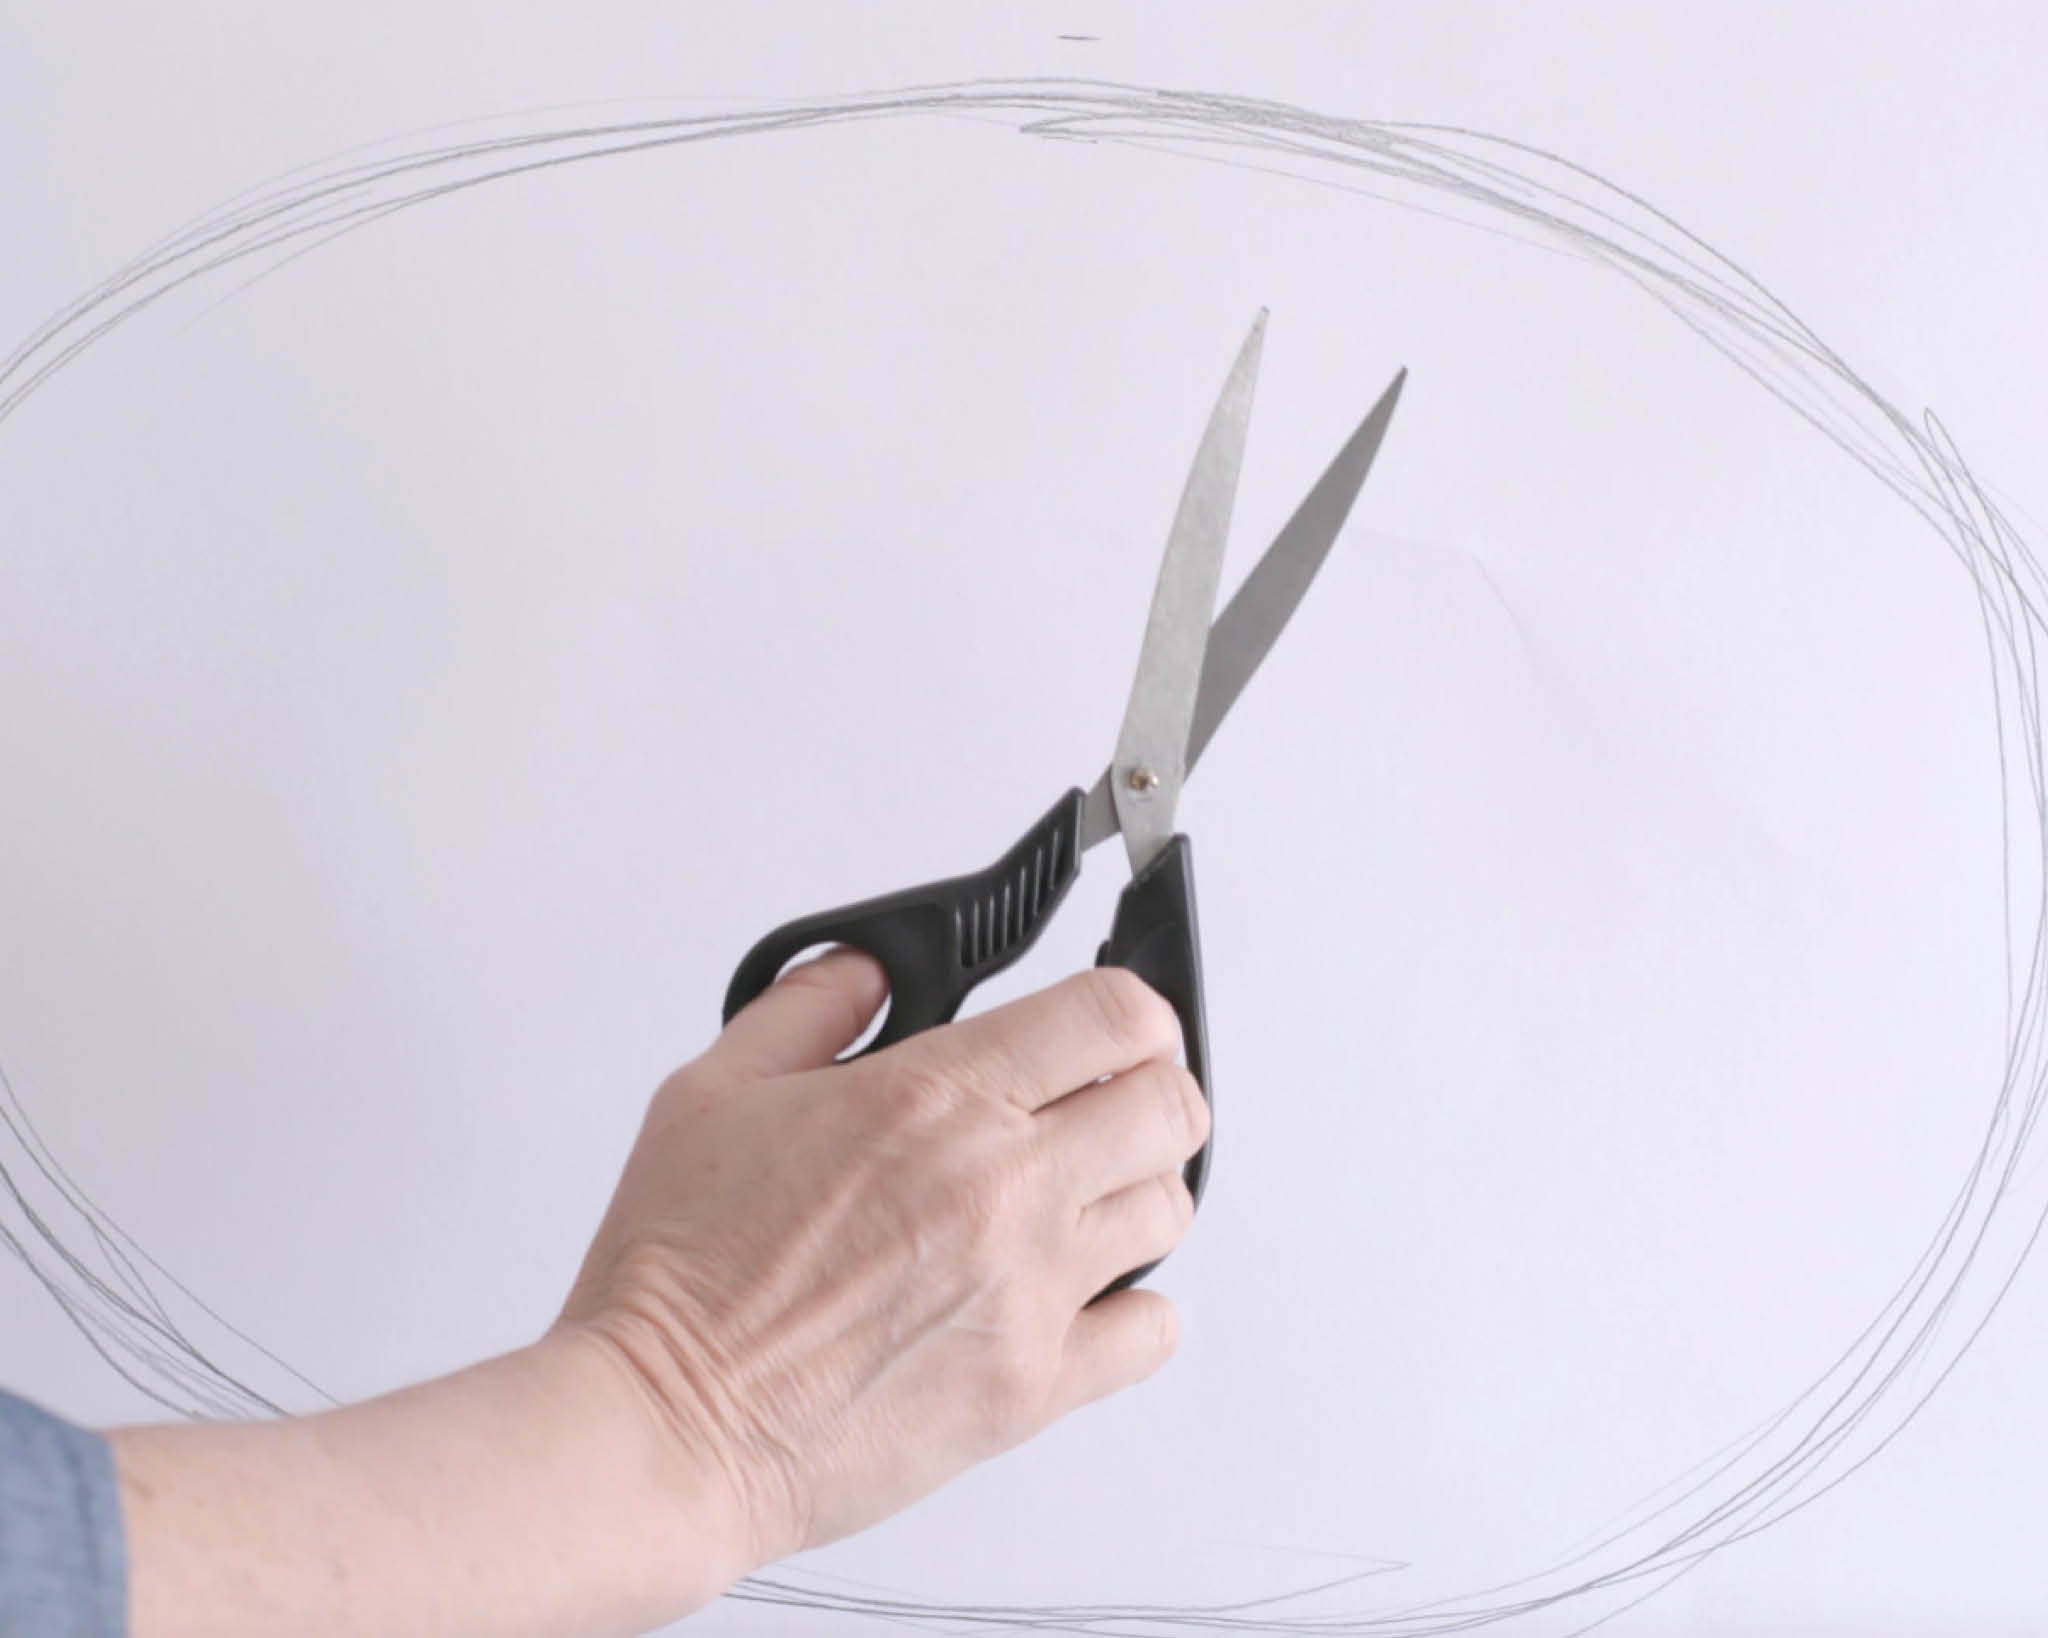 Draw your oval shape on paper and cut it out